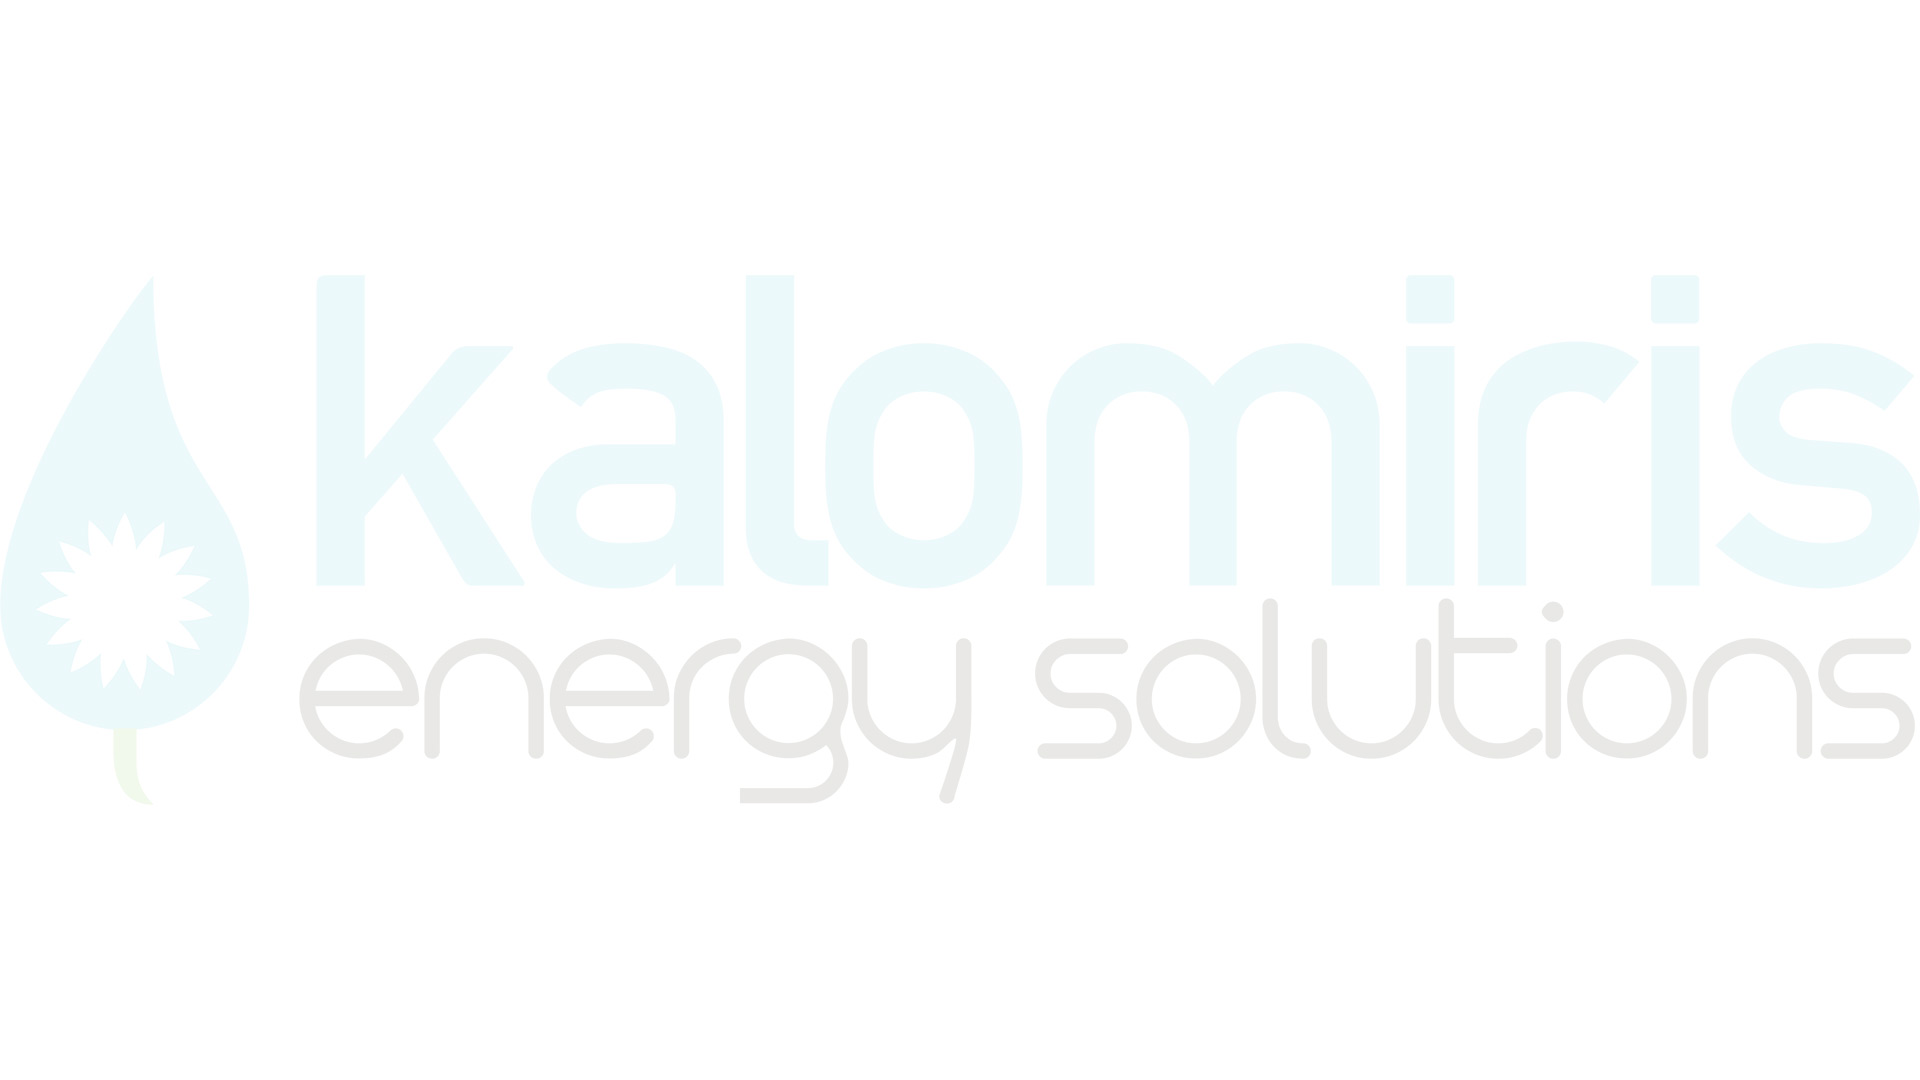 Ceiling Fan CASAFAN CLASSIC ROYAL 132 BA 52 (132cm)